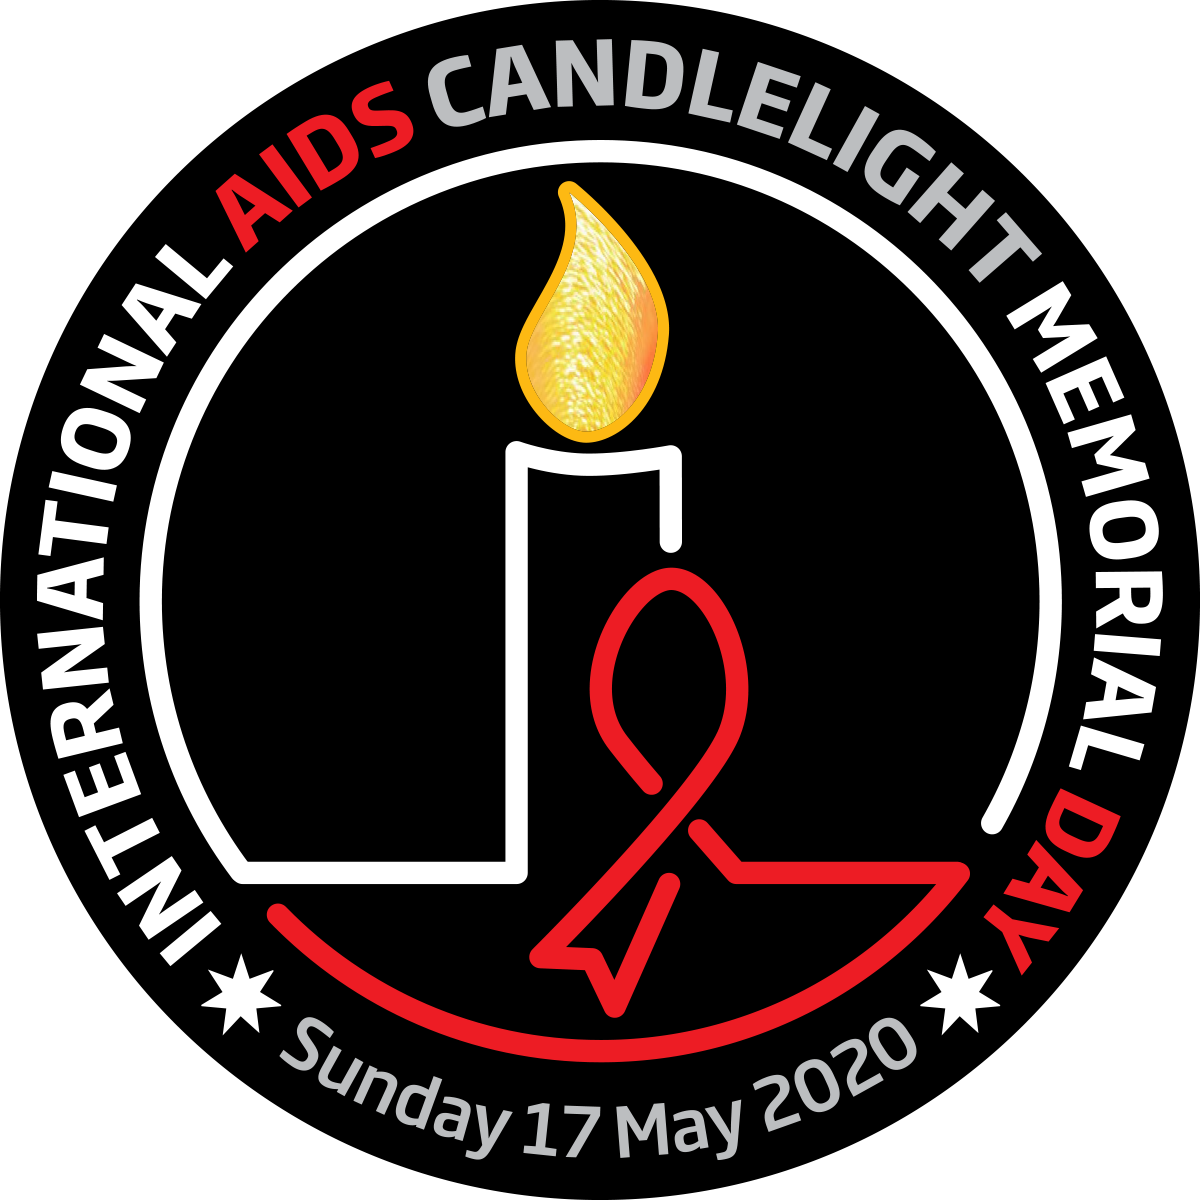 Candlelight Memorial Stamp 2020